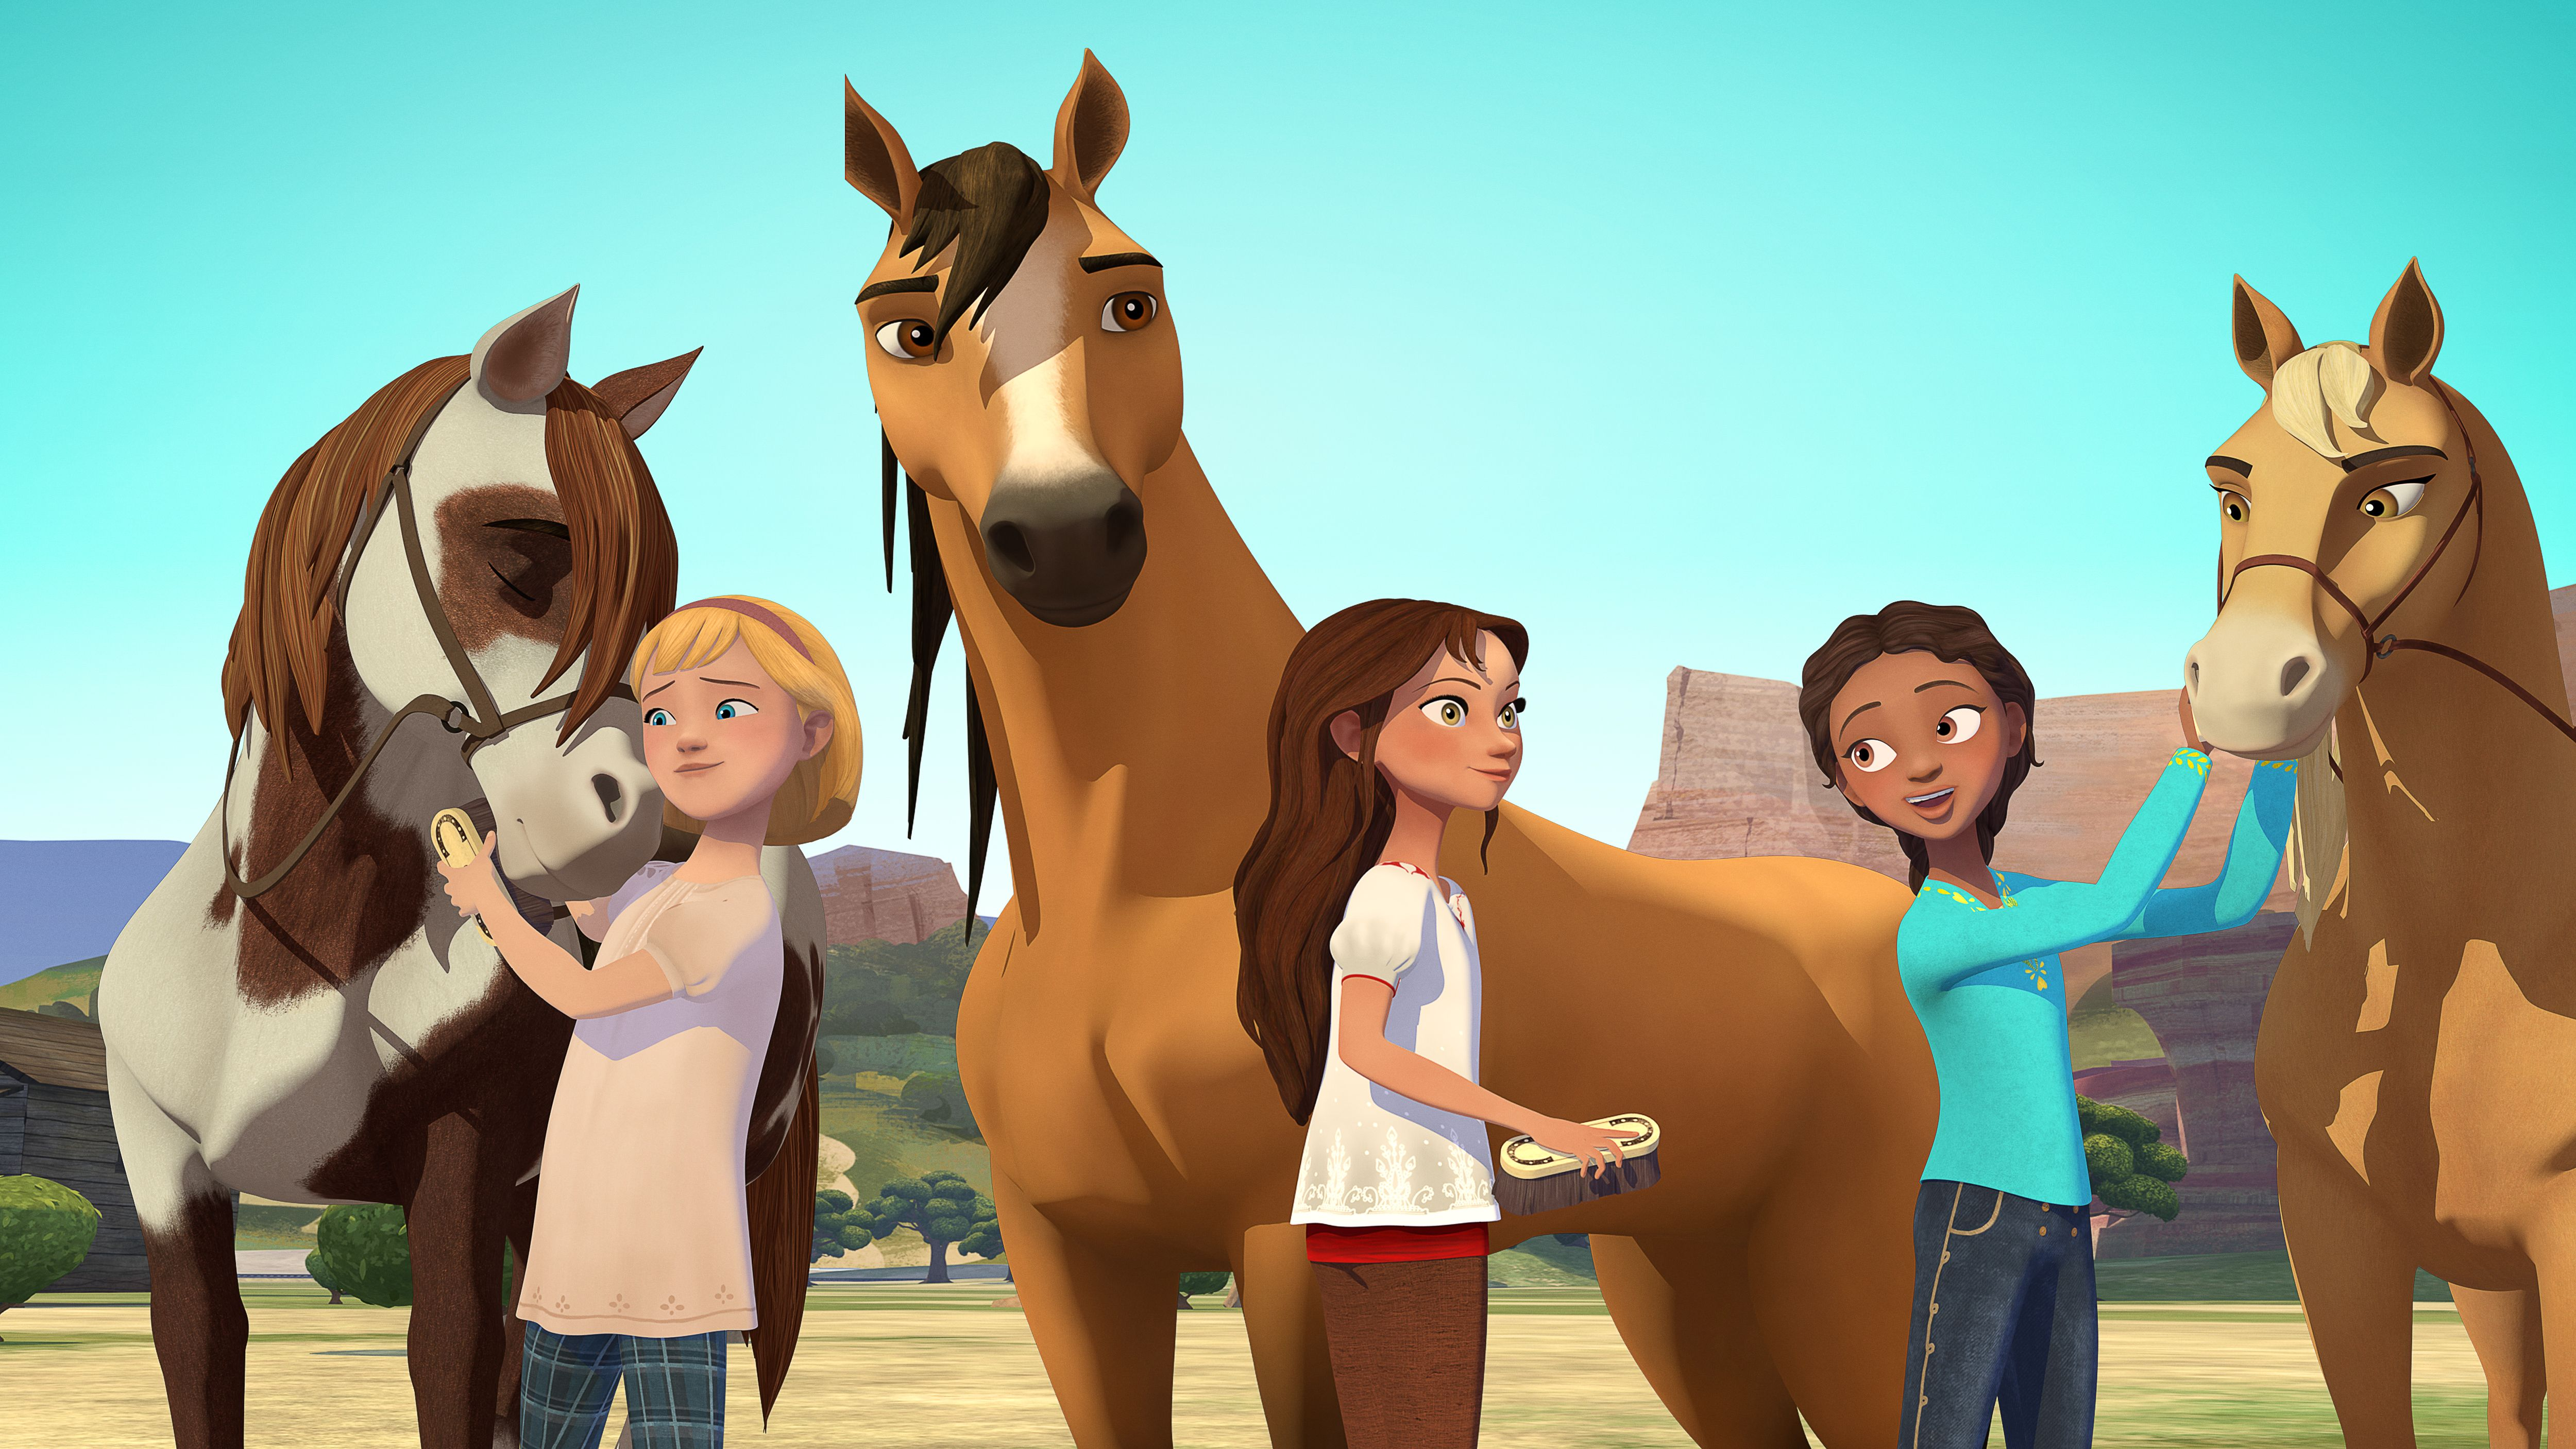 Animated Spirit Horse Porn best netflix animated series, cartoons, and tv shows | collider